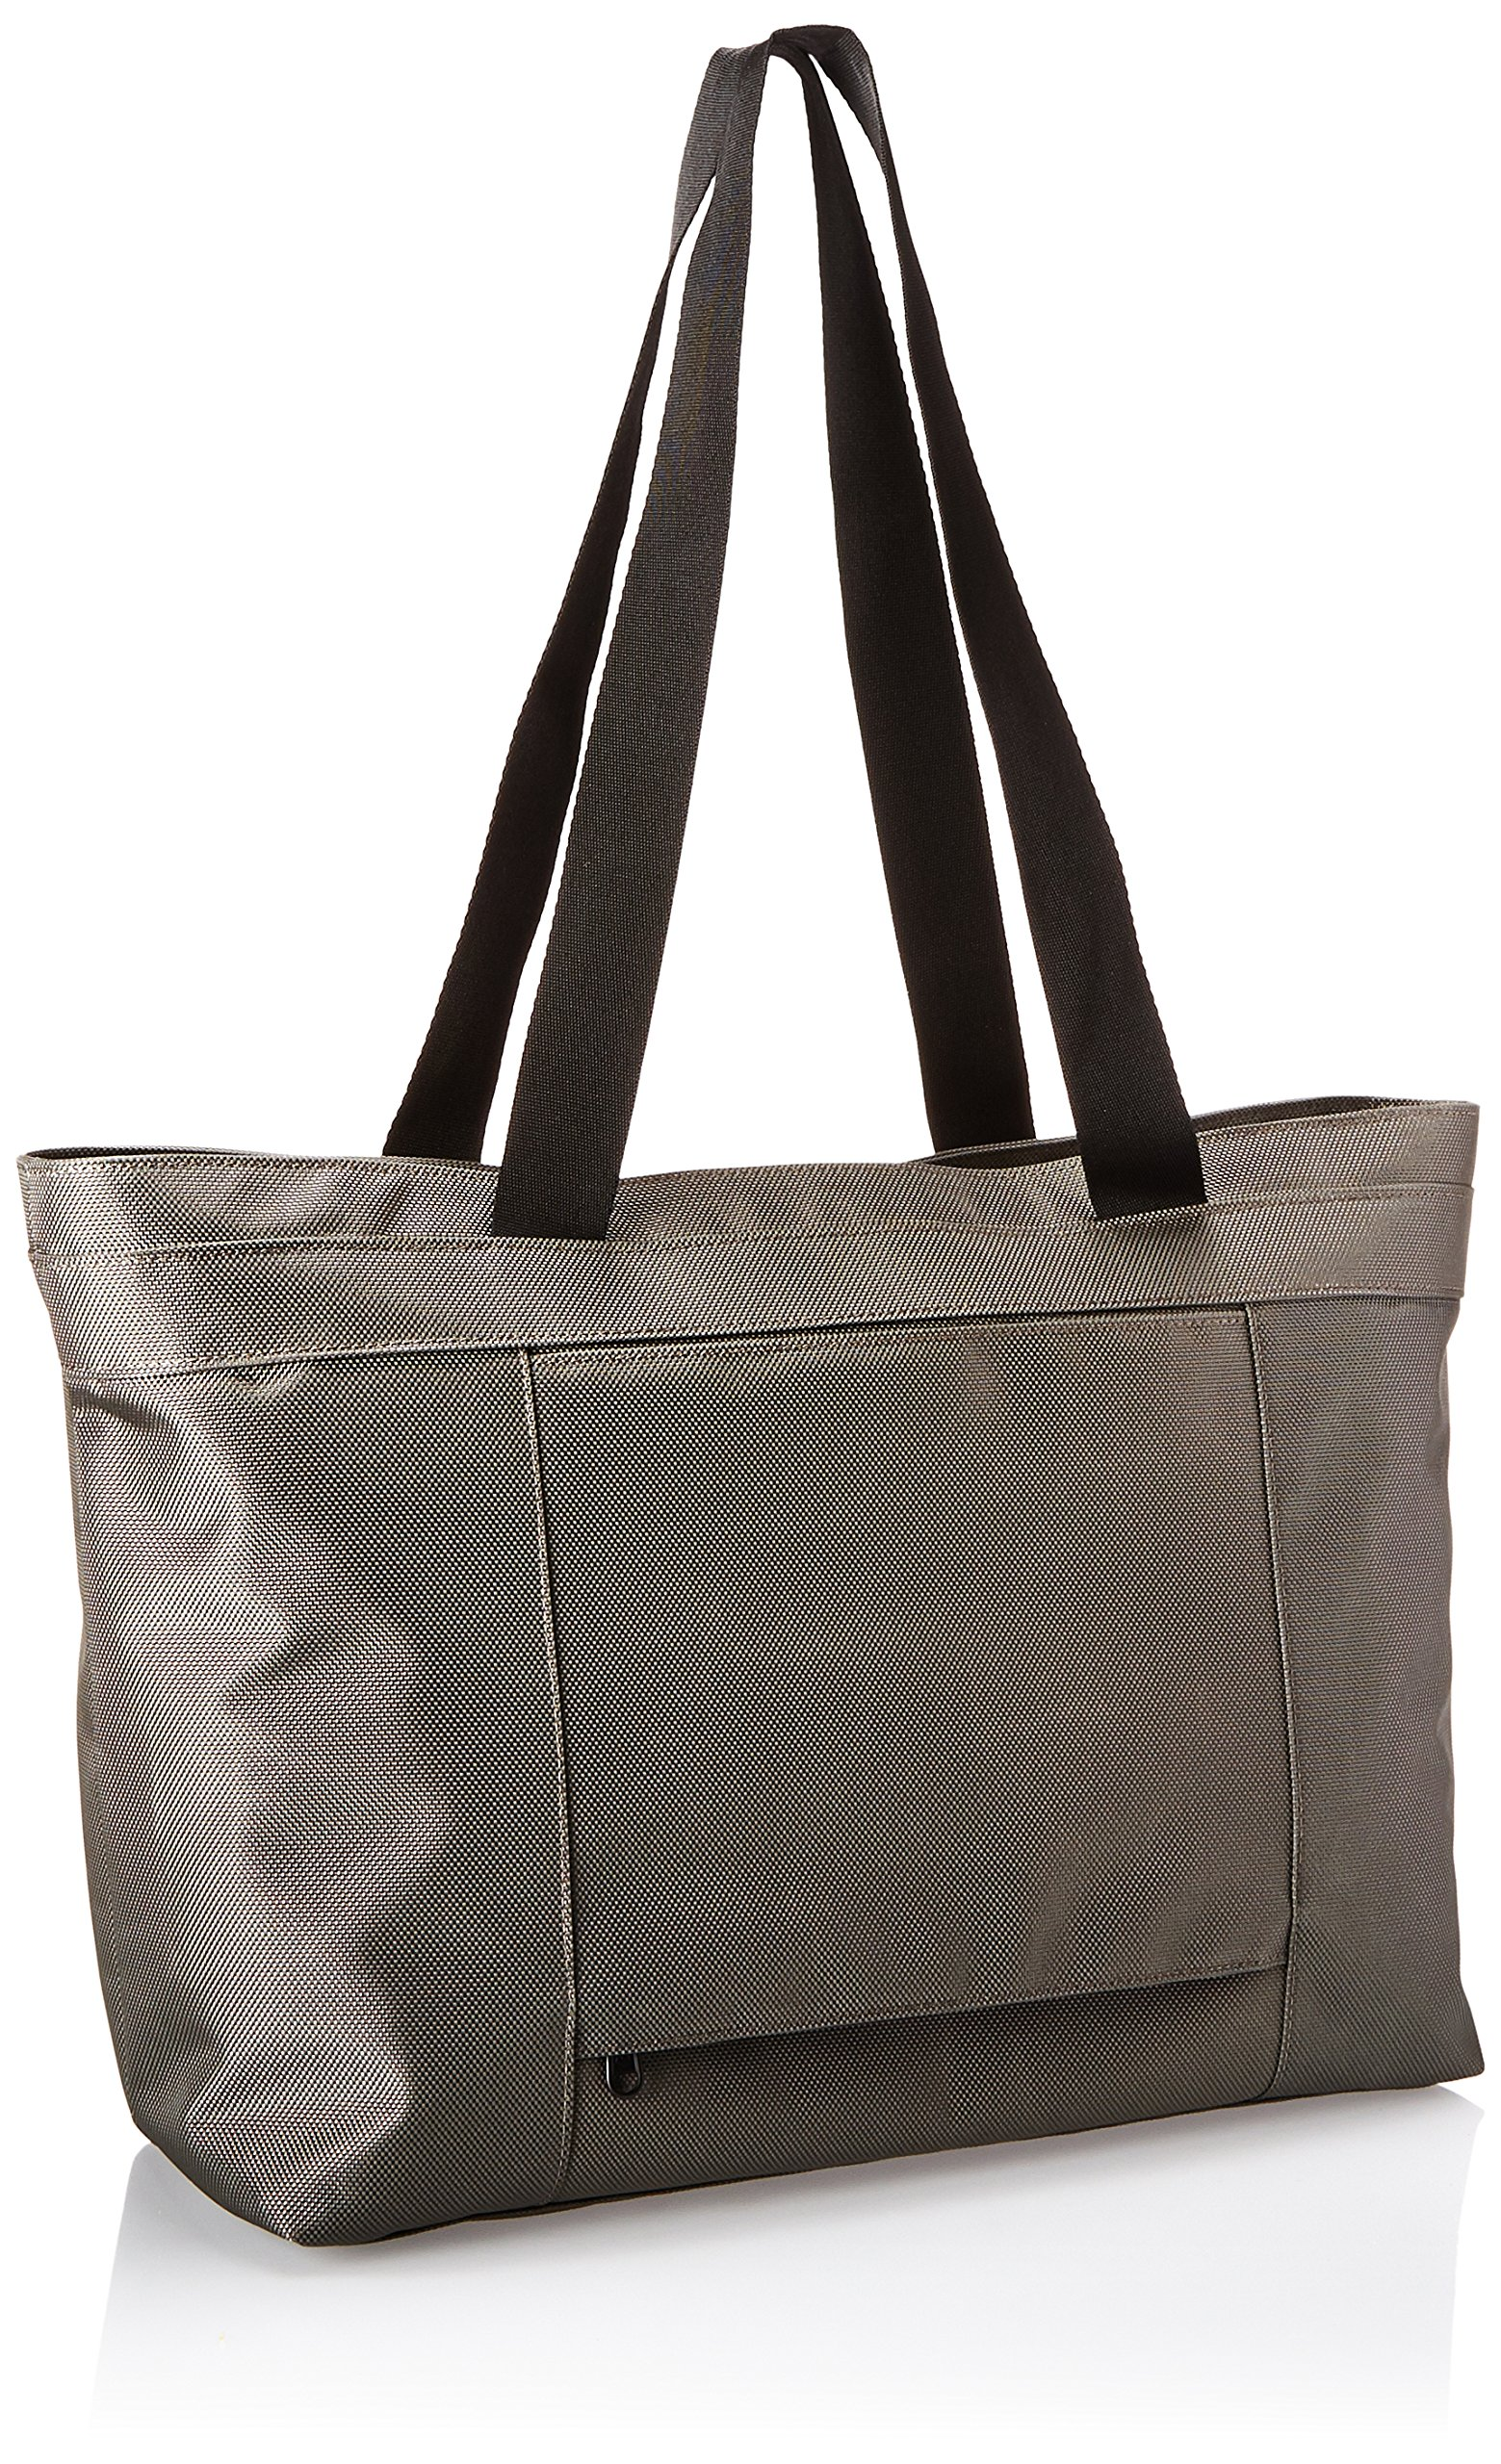 Victorinox Werks Traveler 5.0 WT Shopping Tote, Olive Green, One Size by Victorinox (Image #3)